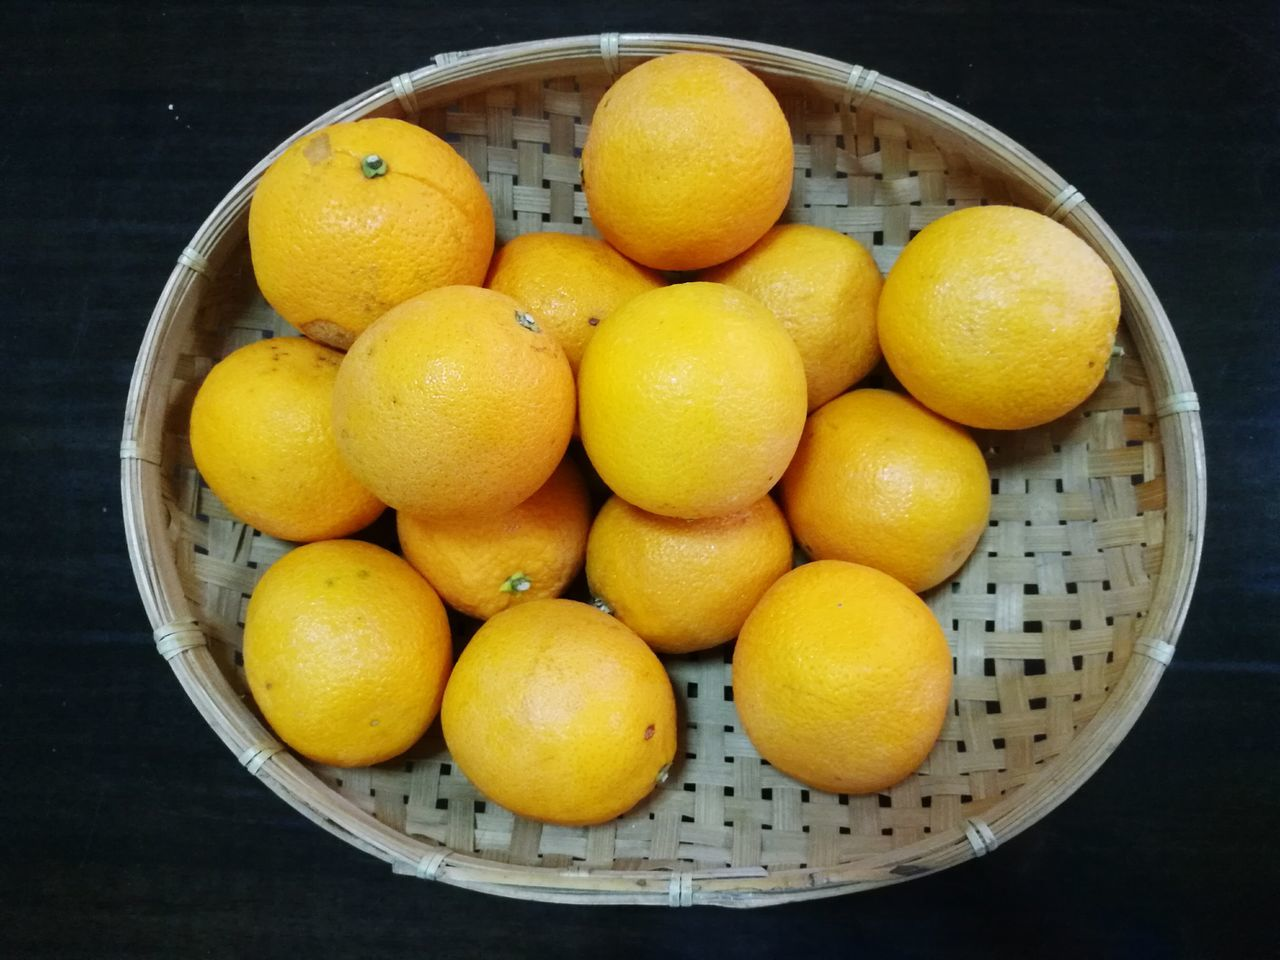 fruit, healthy eating, food and drink, freshness, food, citrus fruit, yellow, high angle view, basket, no people, table, close-up, indoors, day